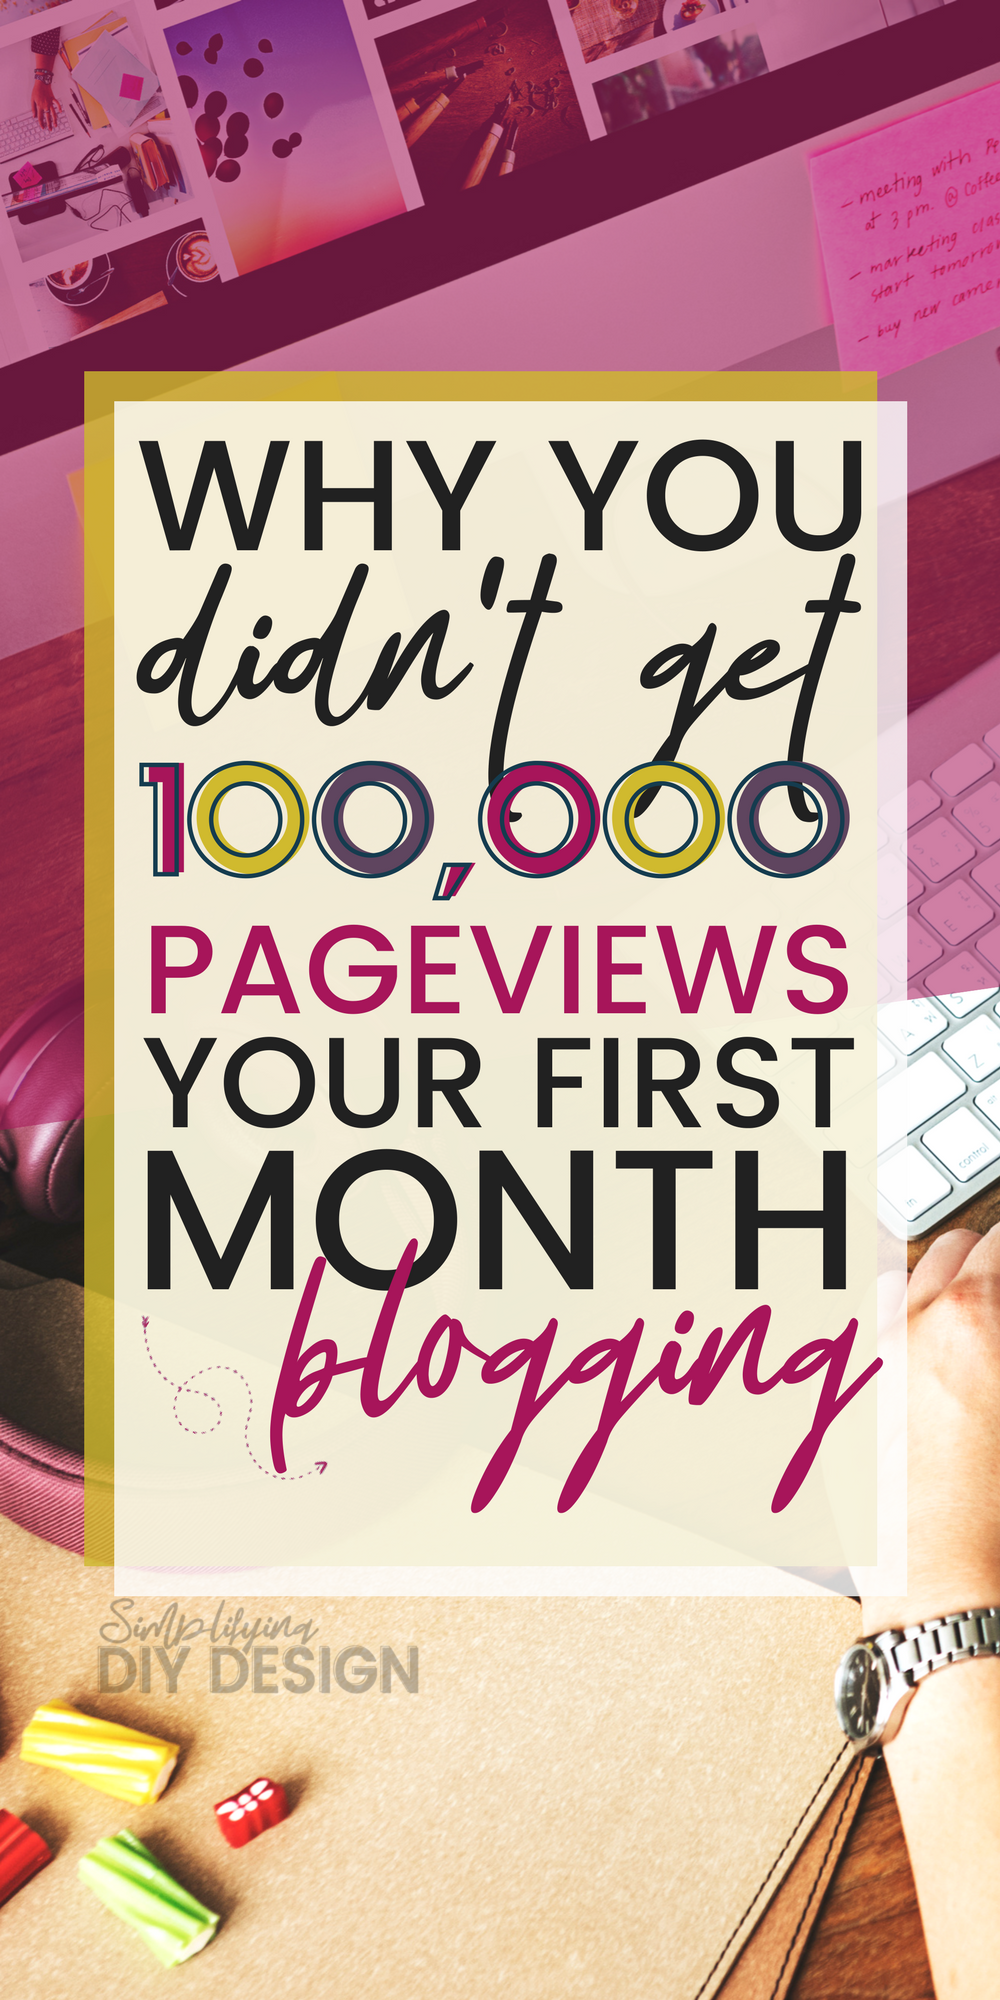 Title of image: Why you didn't get 100000 pageviews in your first month blogging